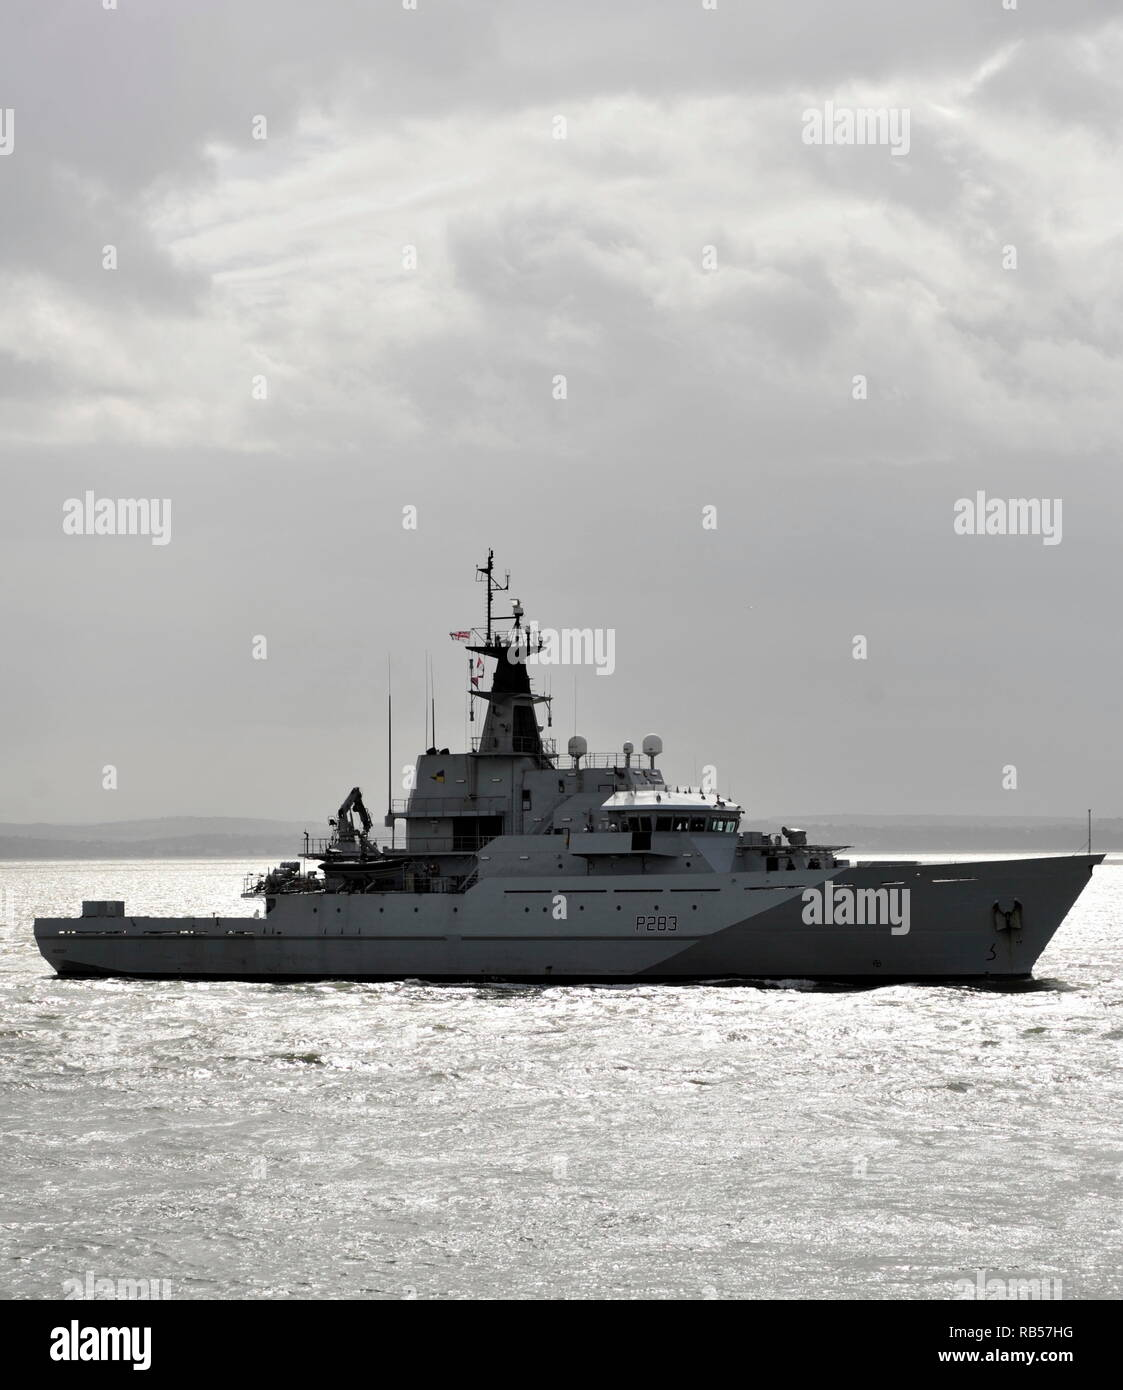 AJAXNETPHOTO. - 1ST APRIL, 2015. PORTSMOUTH, ENGLAND. - PATROL SHP - HMS MERSEY (P283) ENTERING HARBOUR. UPDATE 7TH JAN 2019; ROYAL NAVY DEPLOYED HMS MERSEY TO CHANNEL TO 'HELP PREVENT MIGRANTS MAKING THE DANGEROUS JOURNEY.'. PHOTO:TONY HOLLAND/AJAX REF;DTH150104_37418 - Stock Image